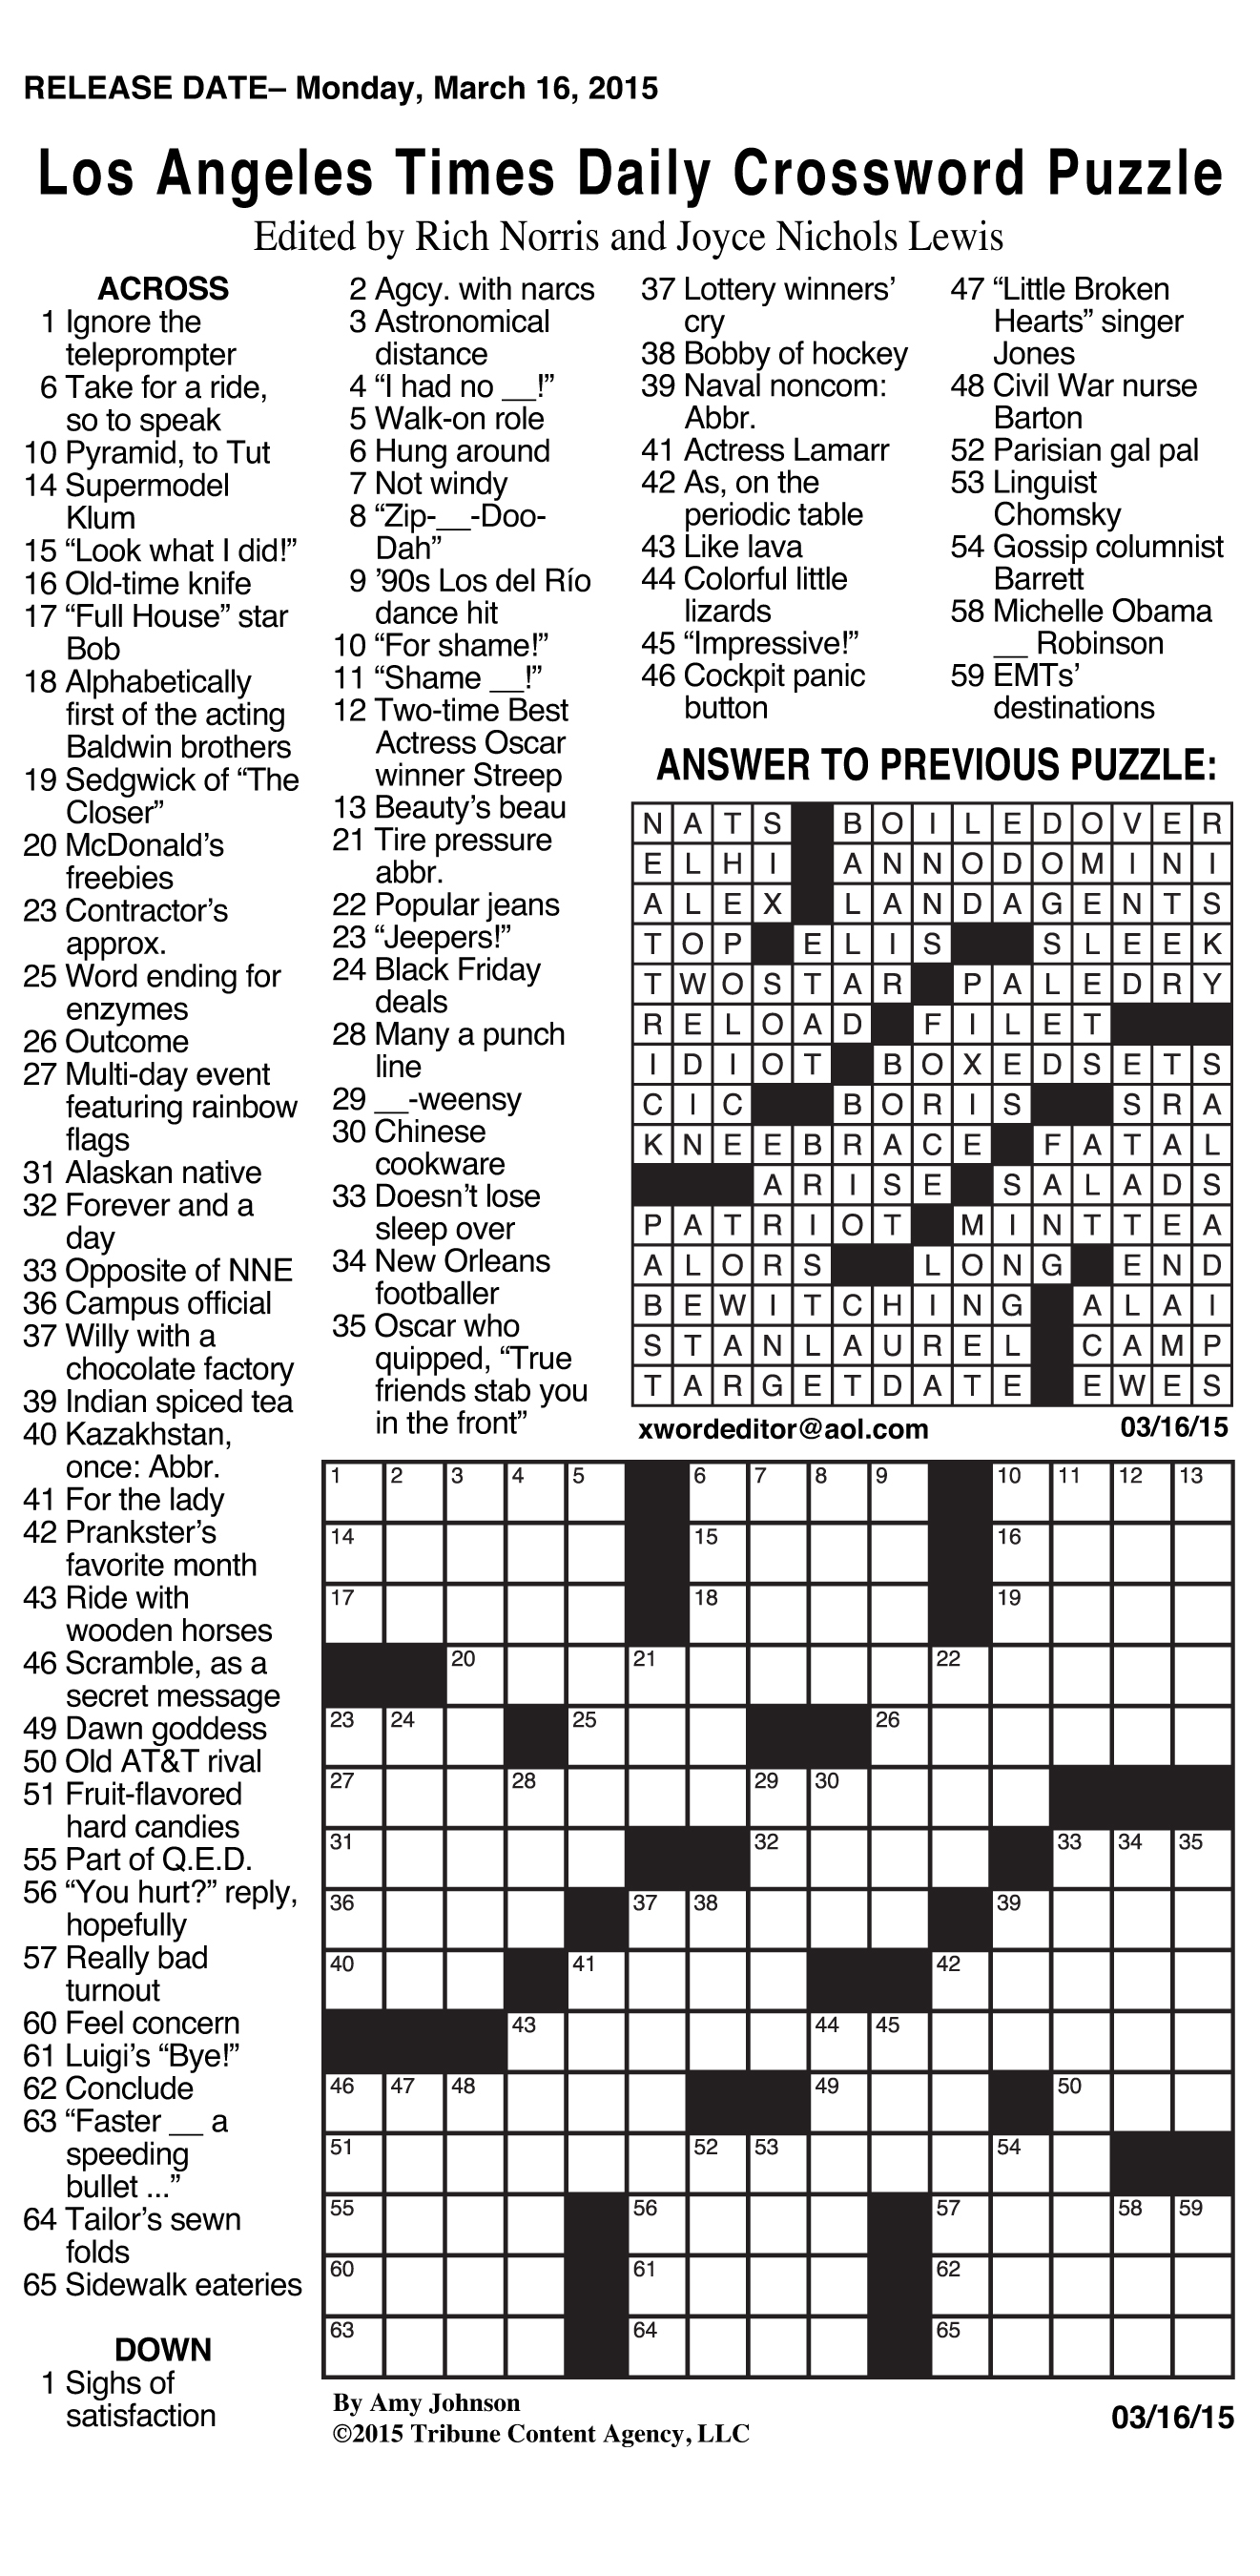 Sample Of Los Angeles Times Daily Crossword Puzzle | Tribune Content - Printable Newspaper Crossword Puzzles